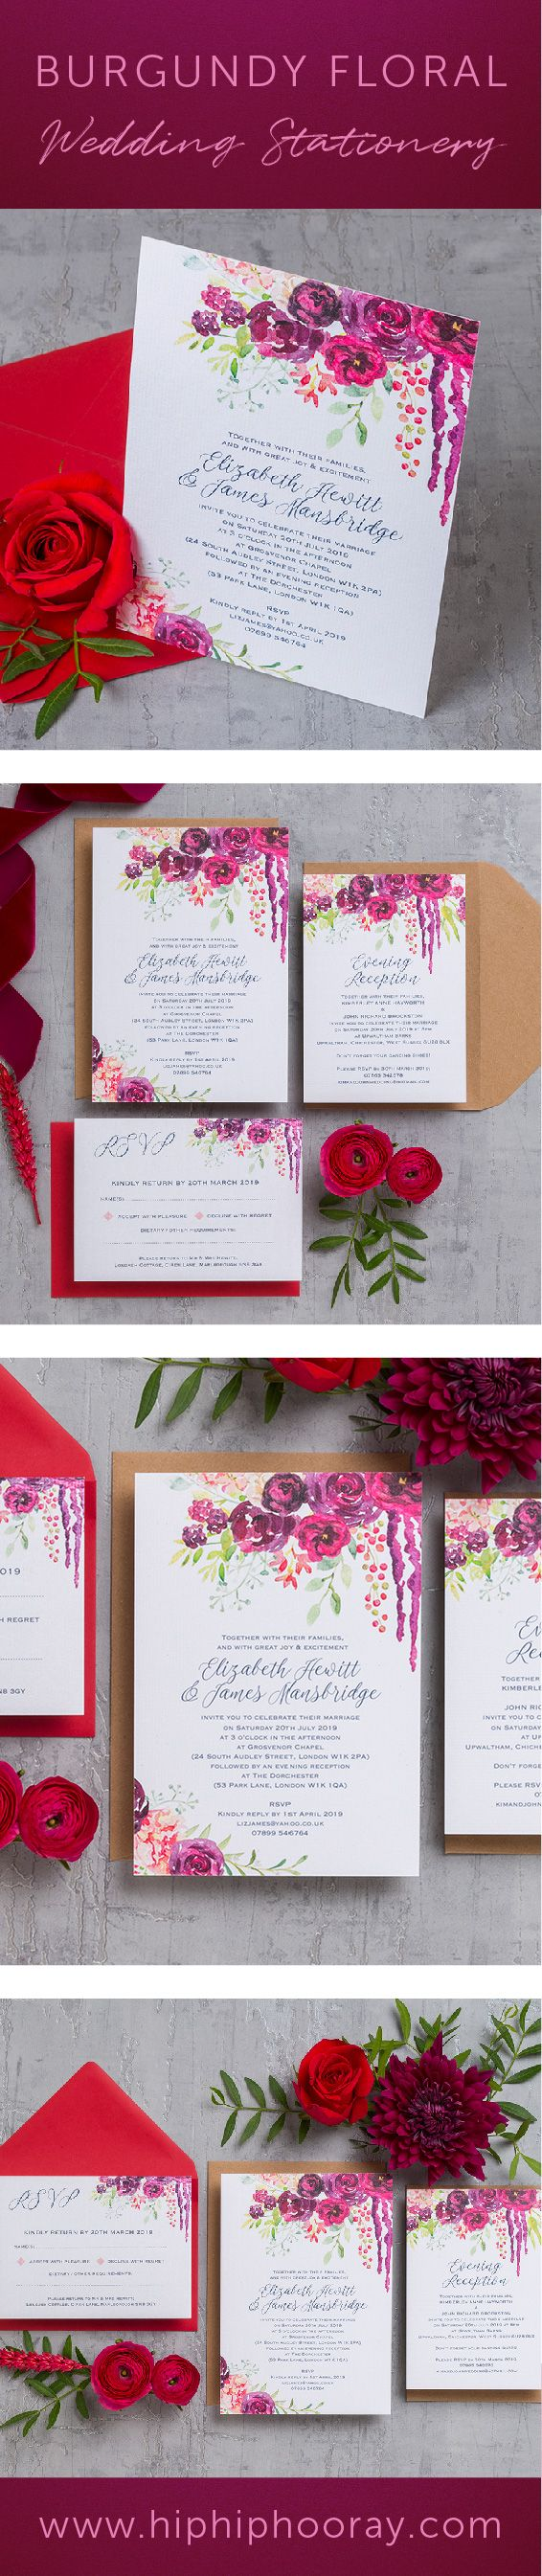 proper response time for wedding rsvp%0A Burgundy floral personalised wedding stationery collection with hand  painted watercolour  watercolor  flowers in shoes of deep pink  marsala   maroon  wine